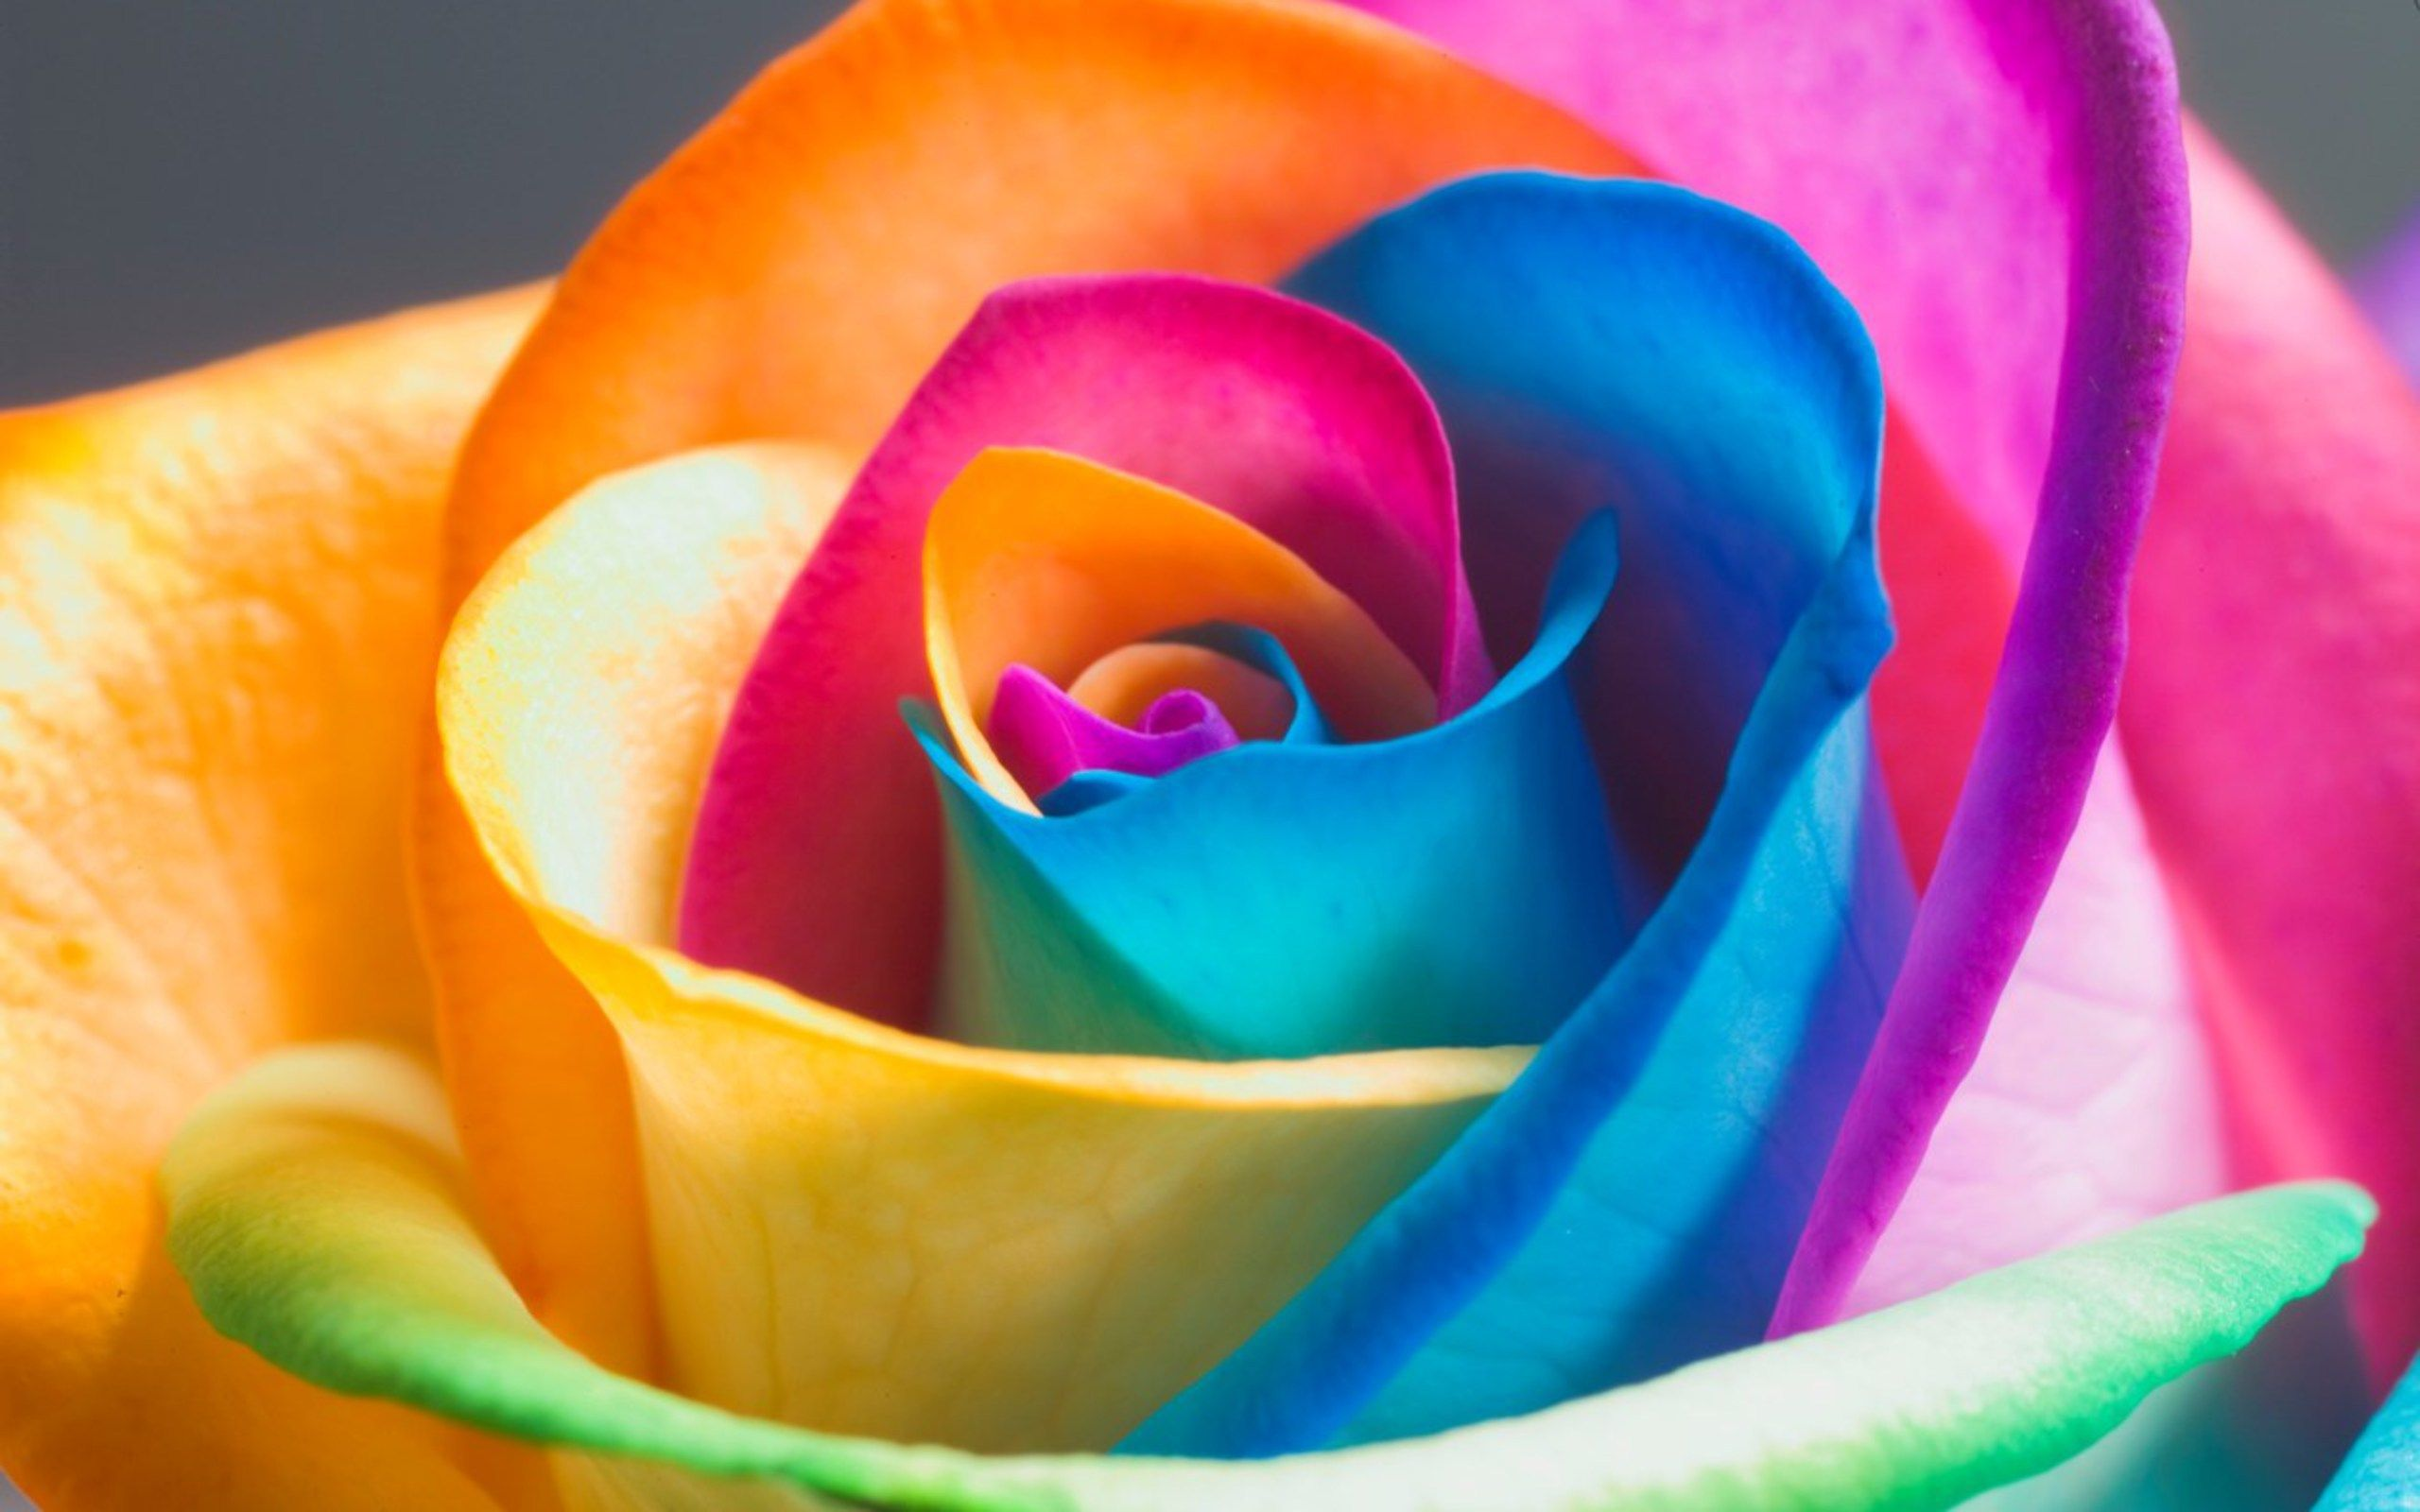 Rose wallpapers and desktop backgrounds up to 8k - Flower wallpaper 3d pic ...